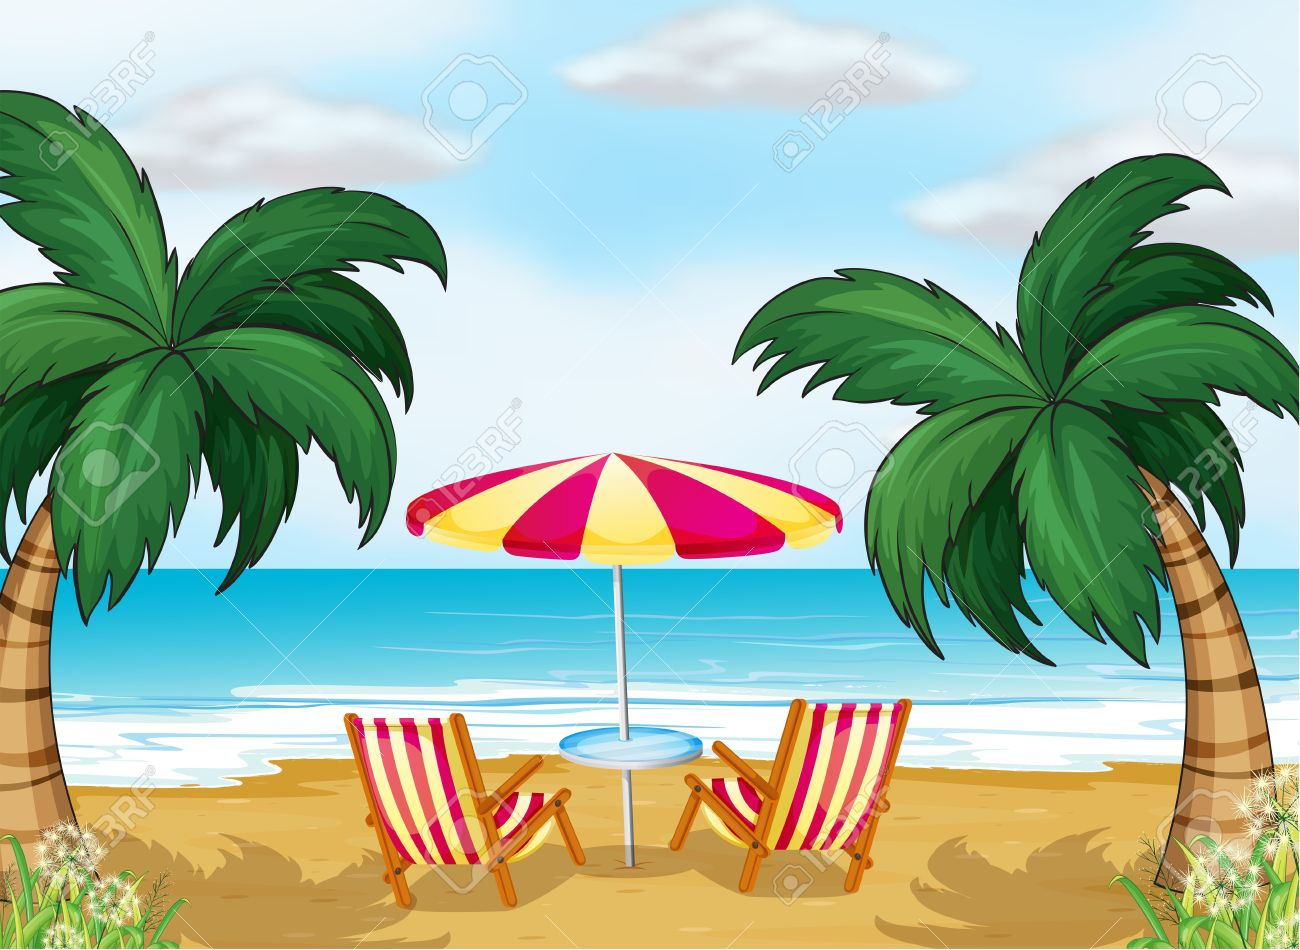 Illustration of the view of the beach with a beach umbrella and chairs Stock Vector - 18390404